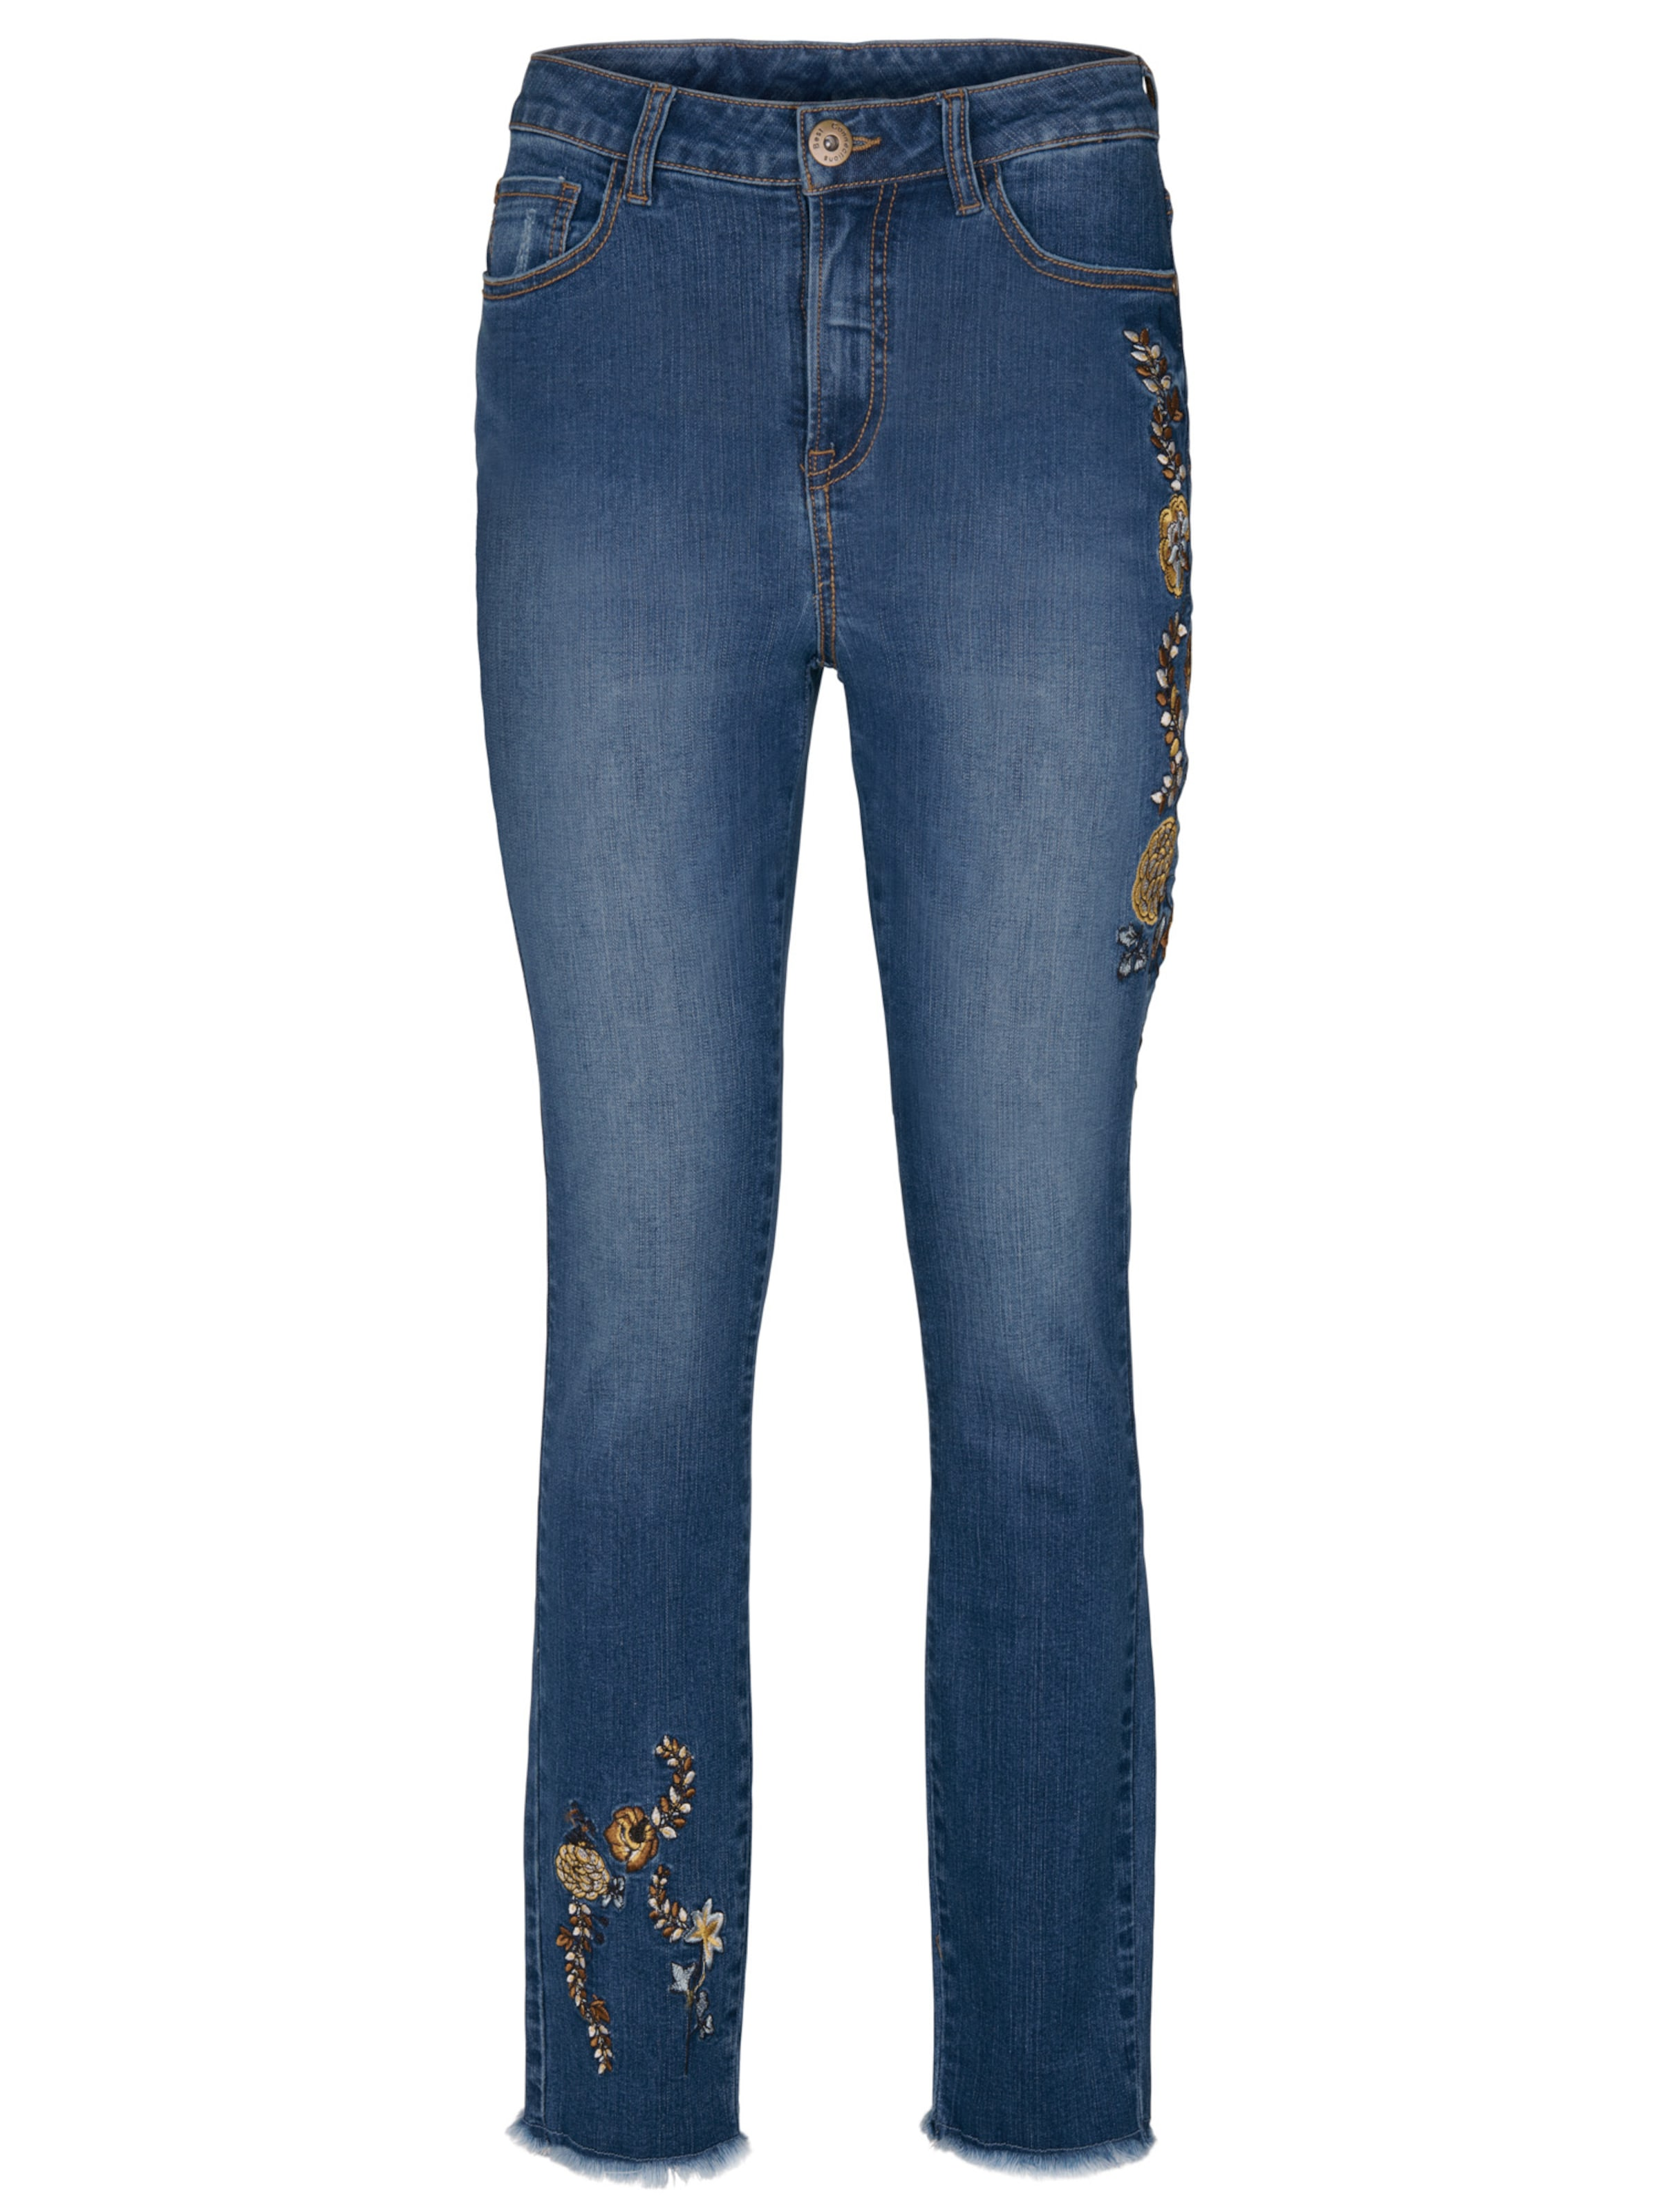 Jeans Heine In Heine Jeans Blue Denim In Blue n0mNwvO8